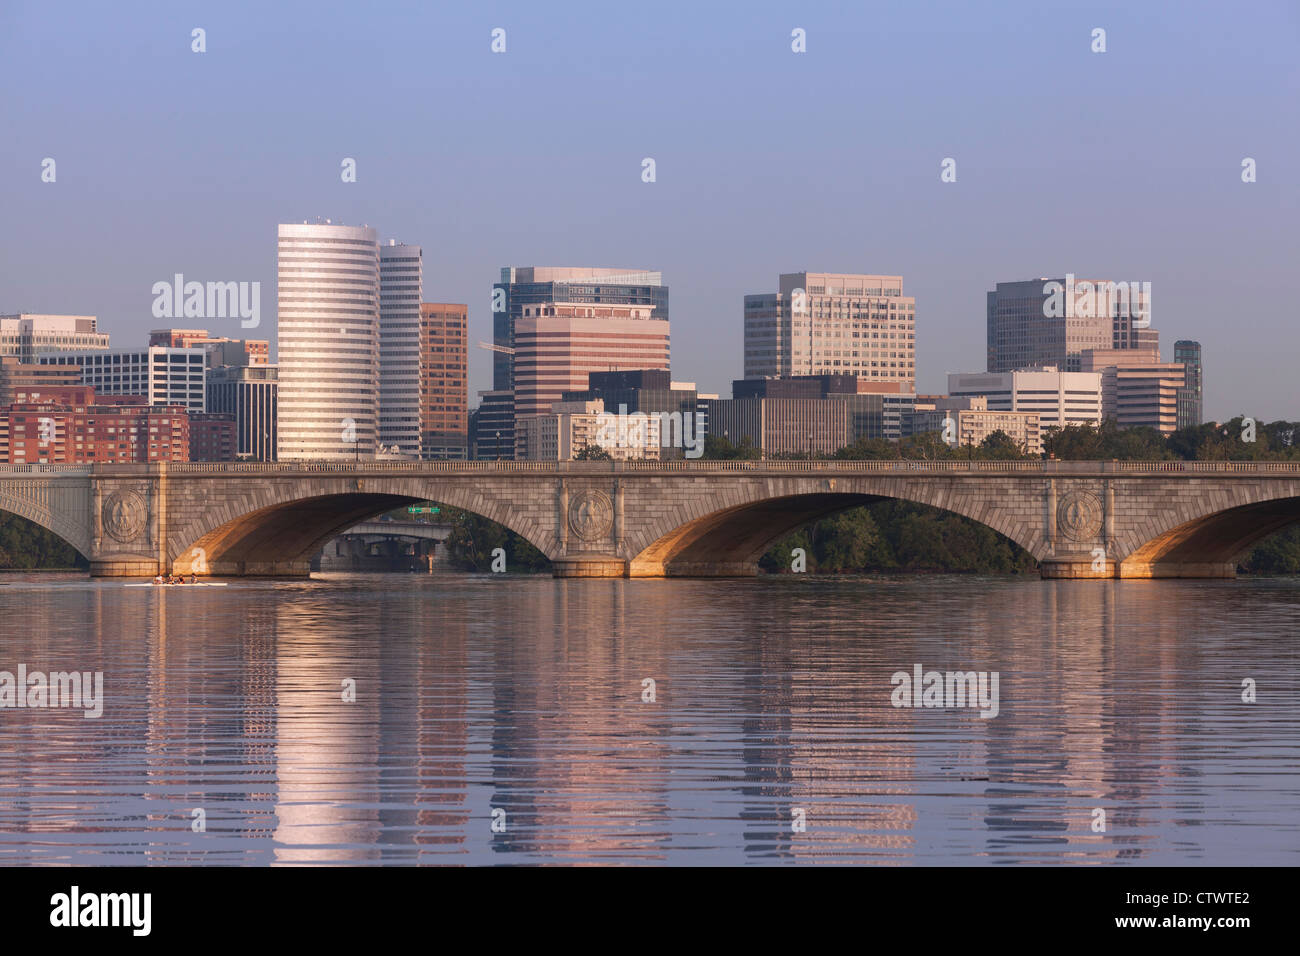 City of Roslyn, Virginia, USA skyline - Stock Image